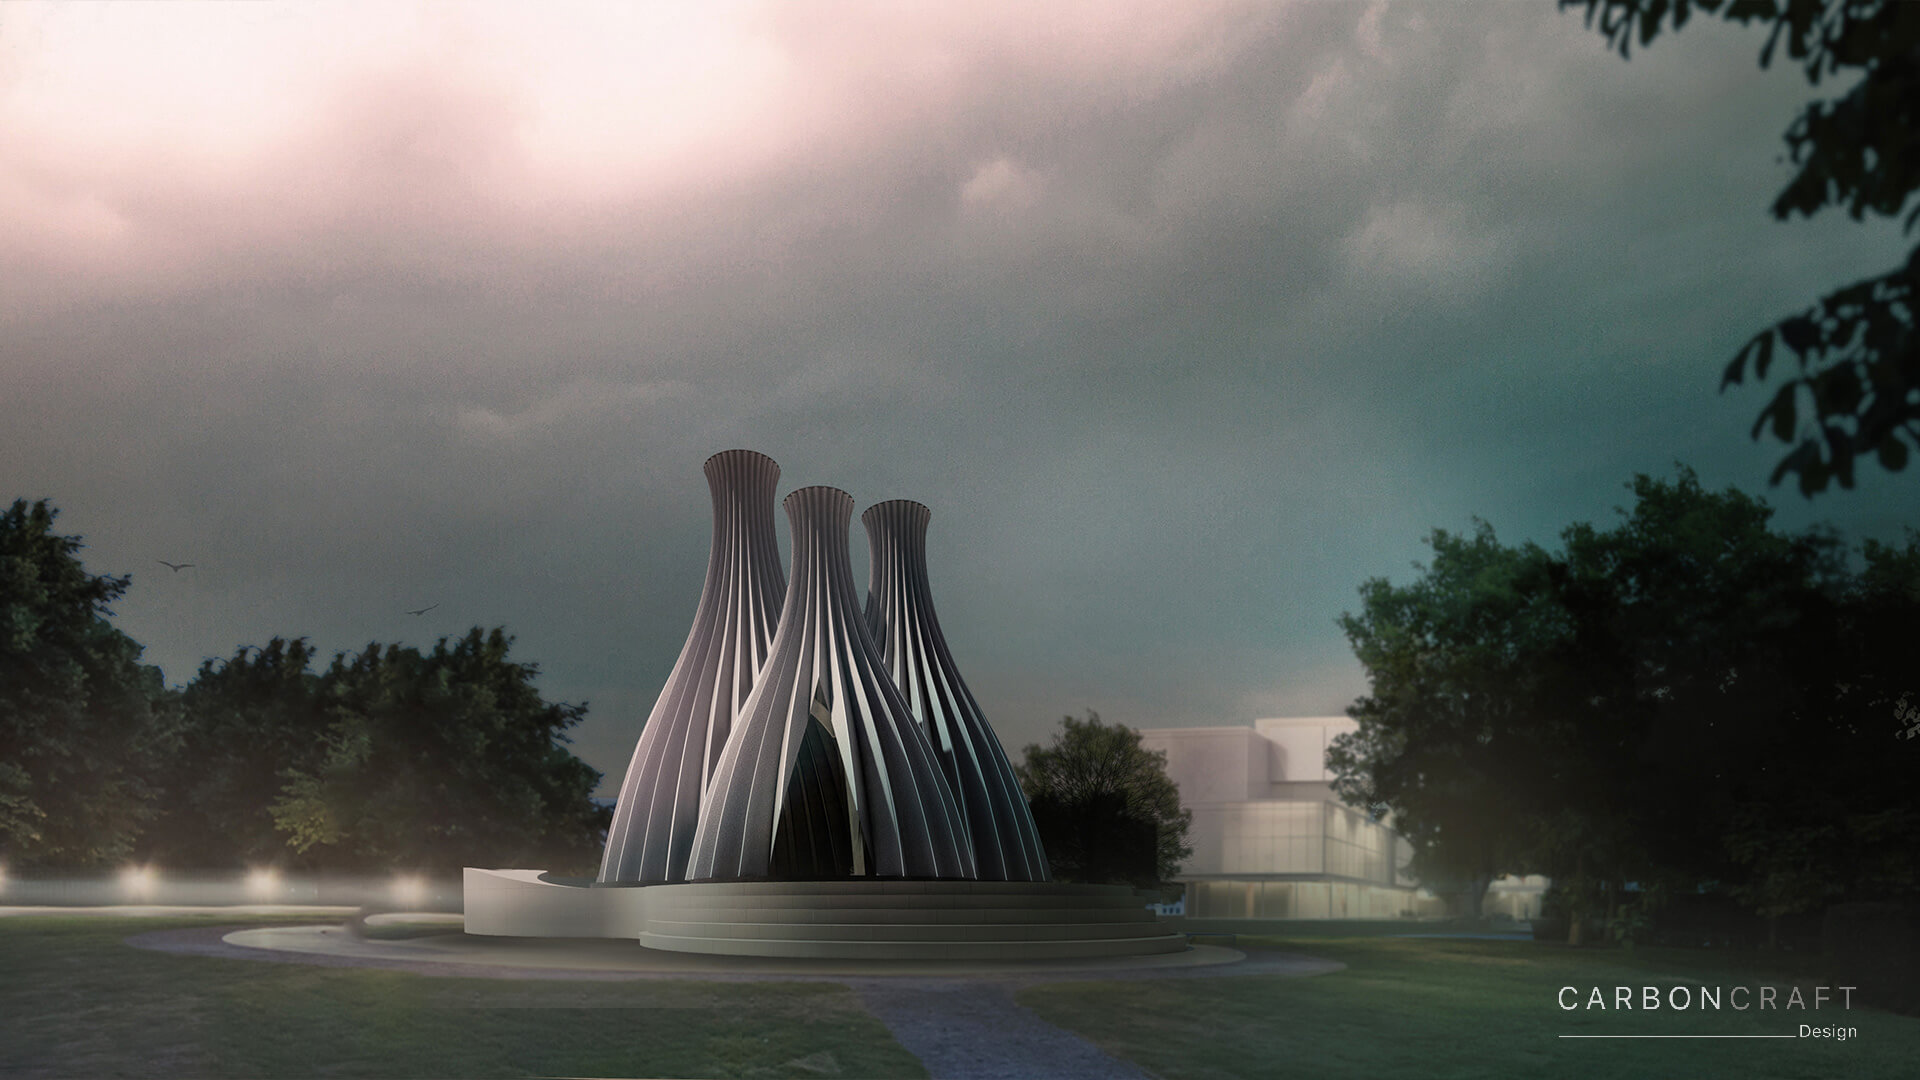 The pavilion aims to suck in polluted air and throw out treated, clean air | Reverse Chimney Pavilion by Carbon Craft Design | STIRworld